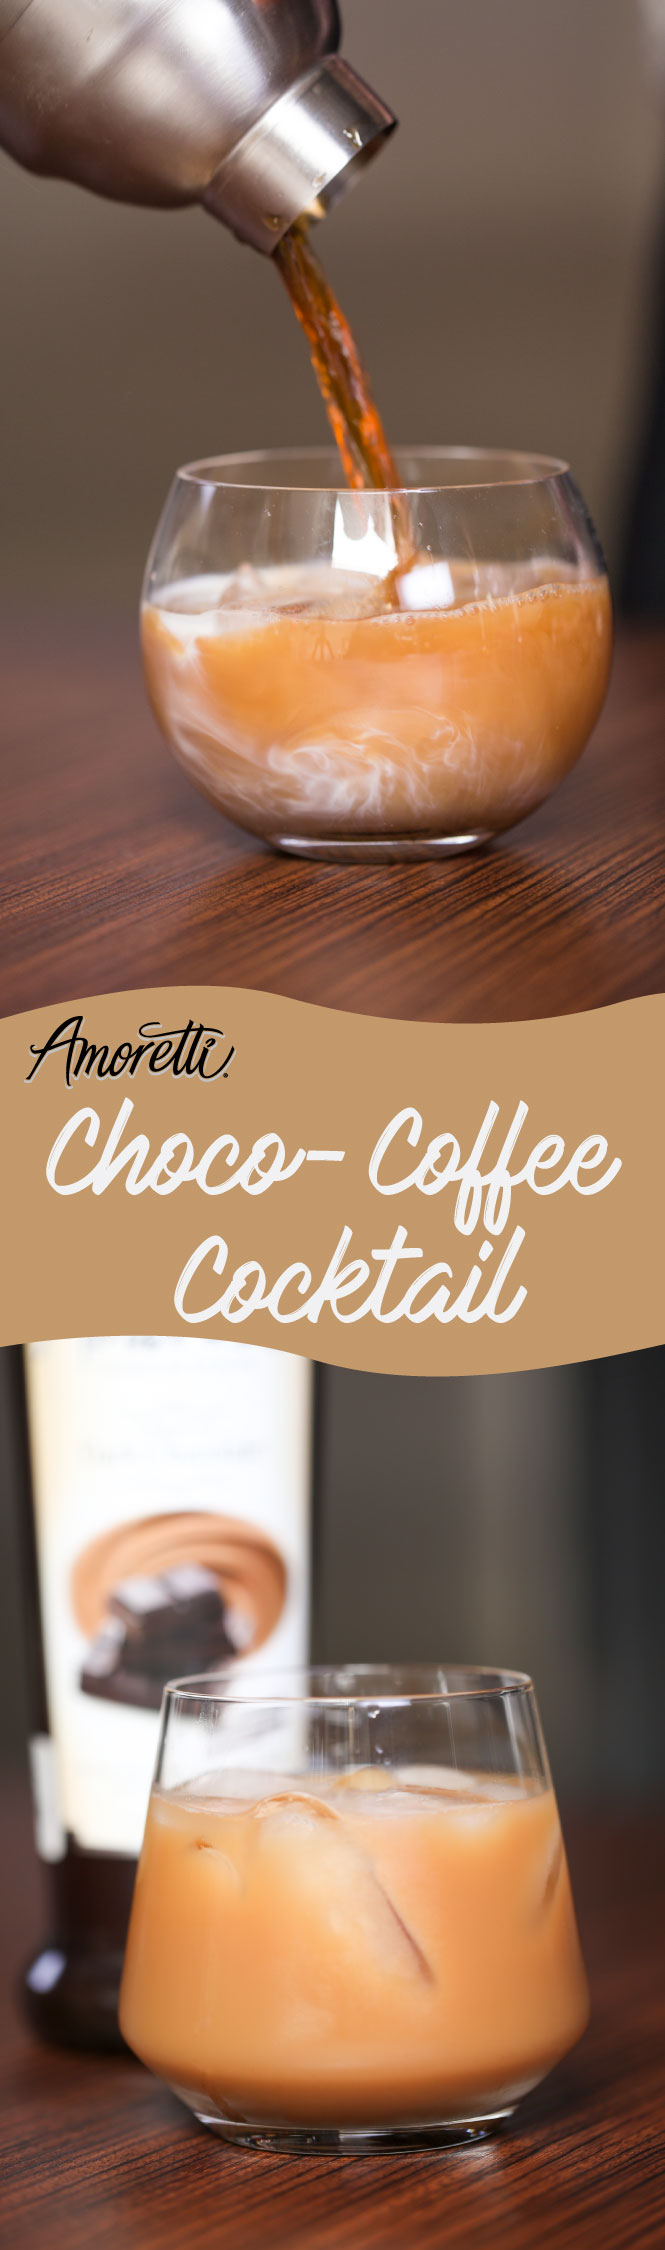 Celebrate Mother's Day by making her a delicious choco-coffee cocktail!